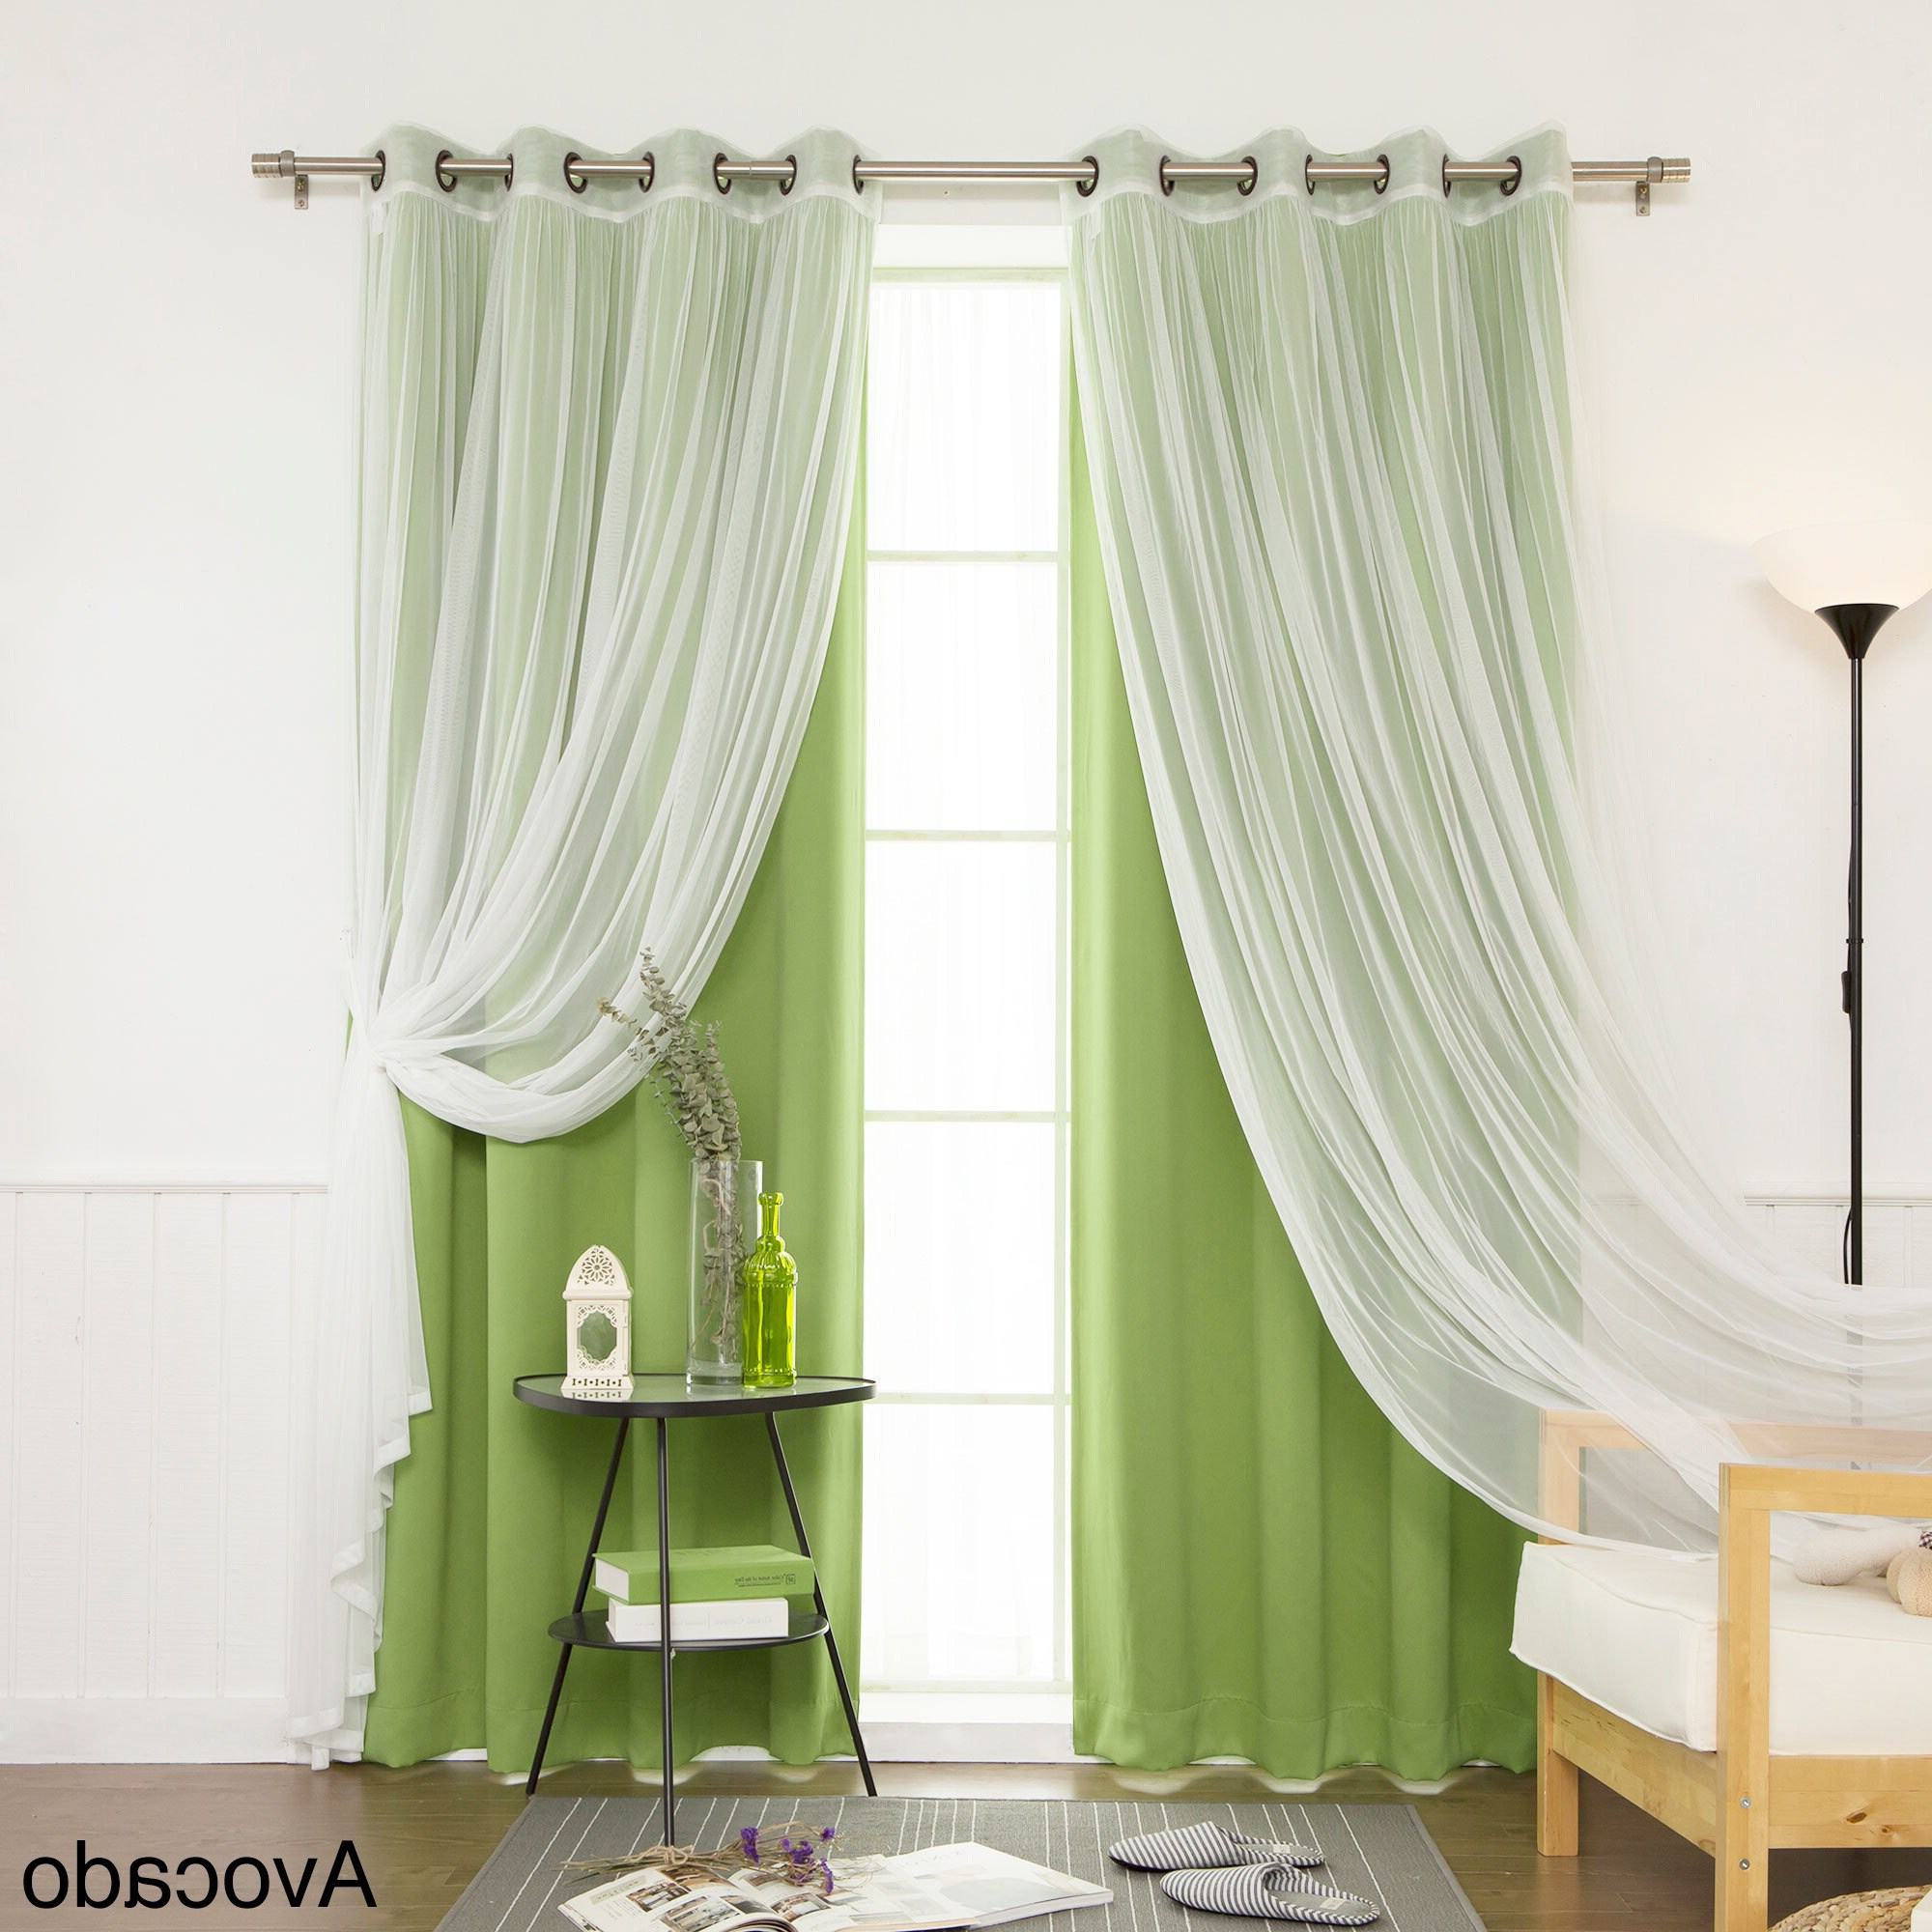 Aurora Home Mix And Match Blackout Blackout Curtains Panel Set (4 Piece) Intended For Most Current Mix And Match Blackout Blackout Curtains Panel Sets (View 9 of 20)